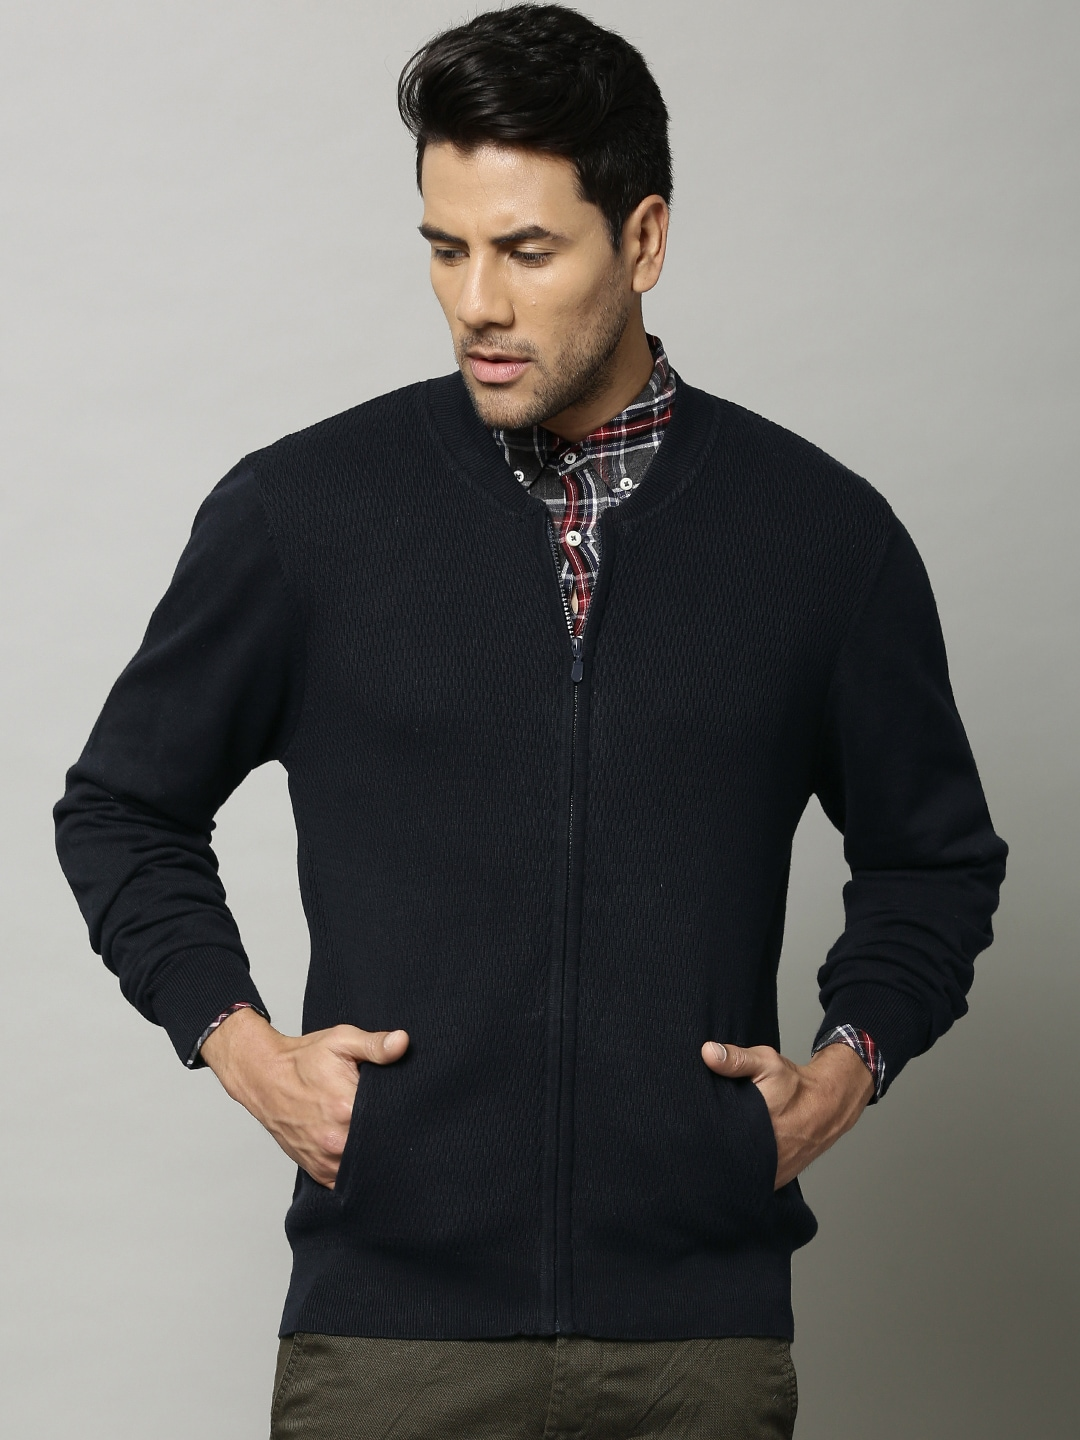 Mens jacket marks and spencer - Marks And Spencer Sweaters Buy Marks And Spencer Sweaters Online In India